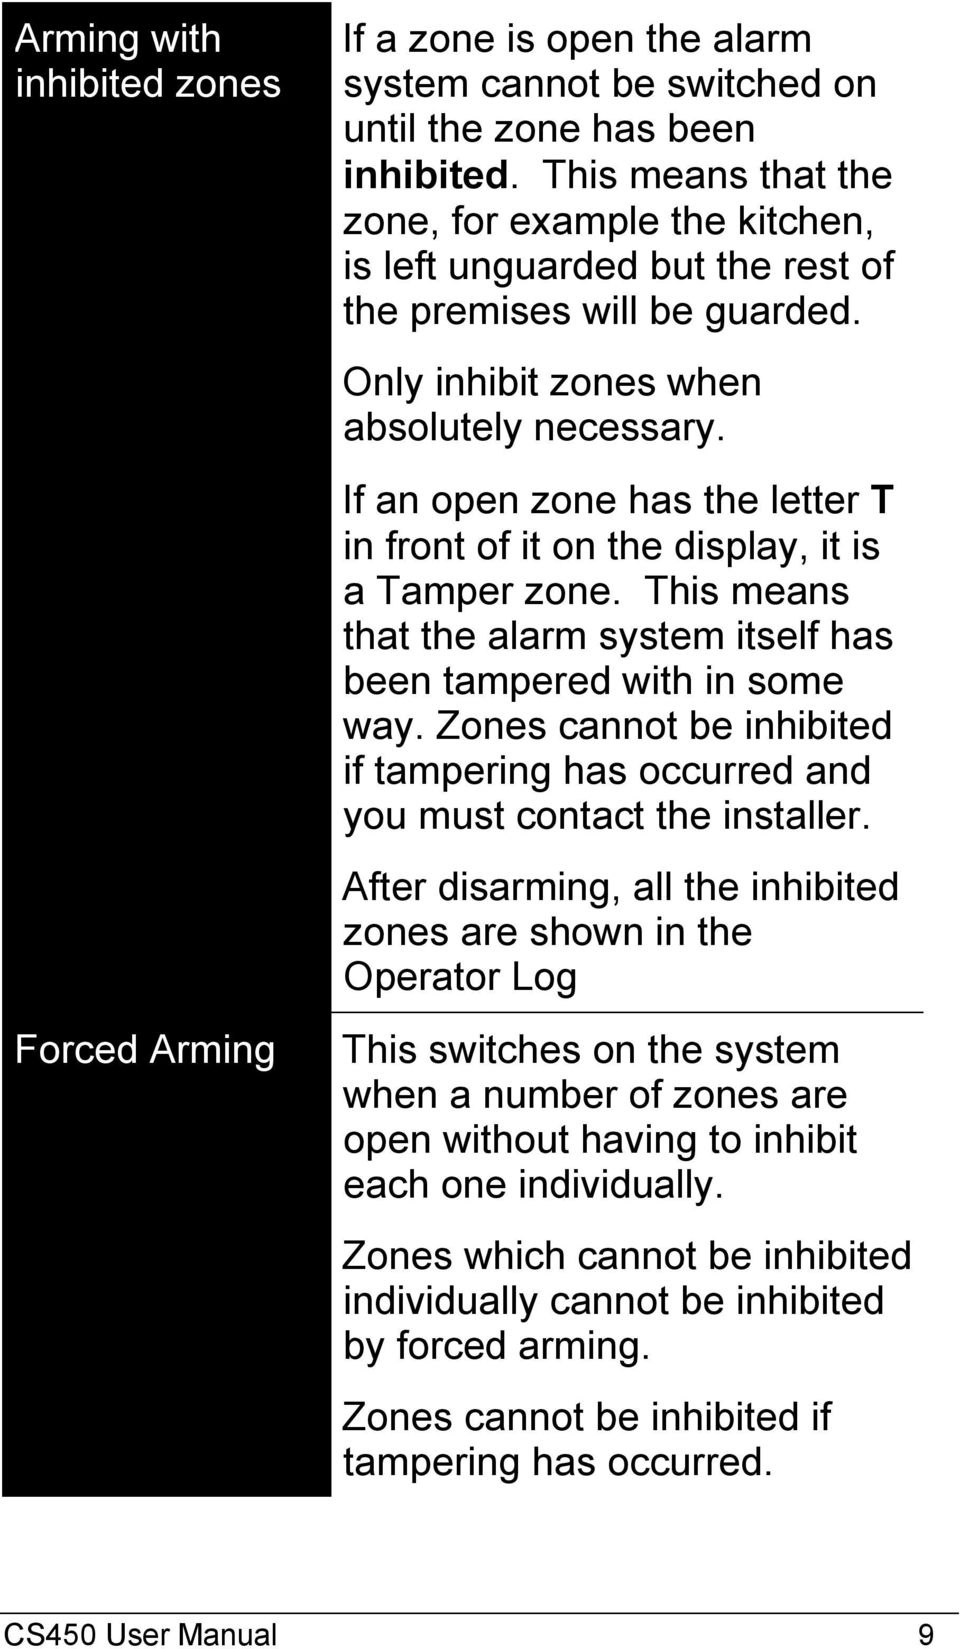 If an open zone has the letter T in front of it on the display, it is a Tamper zone. This means that the alarm system itself has been tampered with in some way.